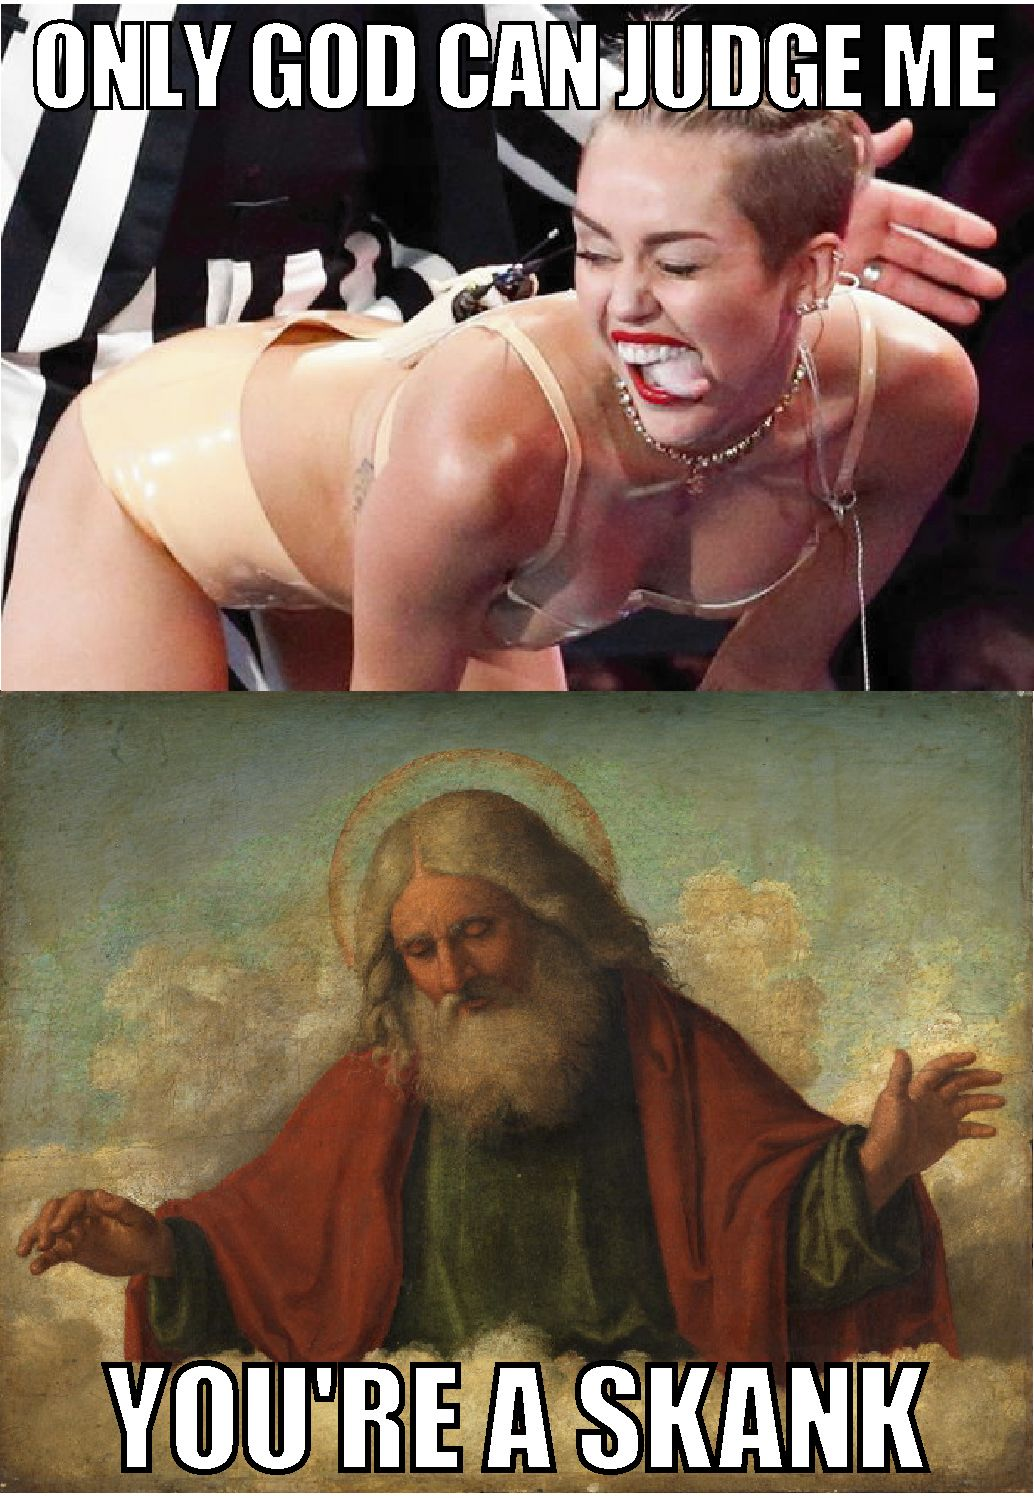 miley cyrus meme - only god can judge me | good stuff | pinterest